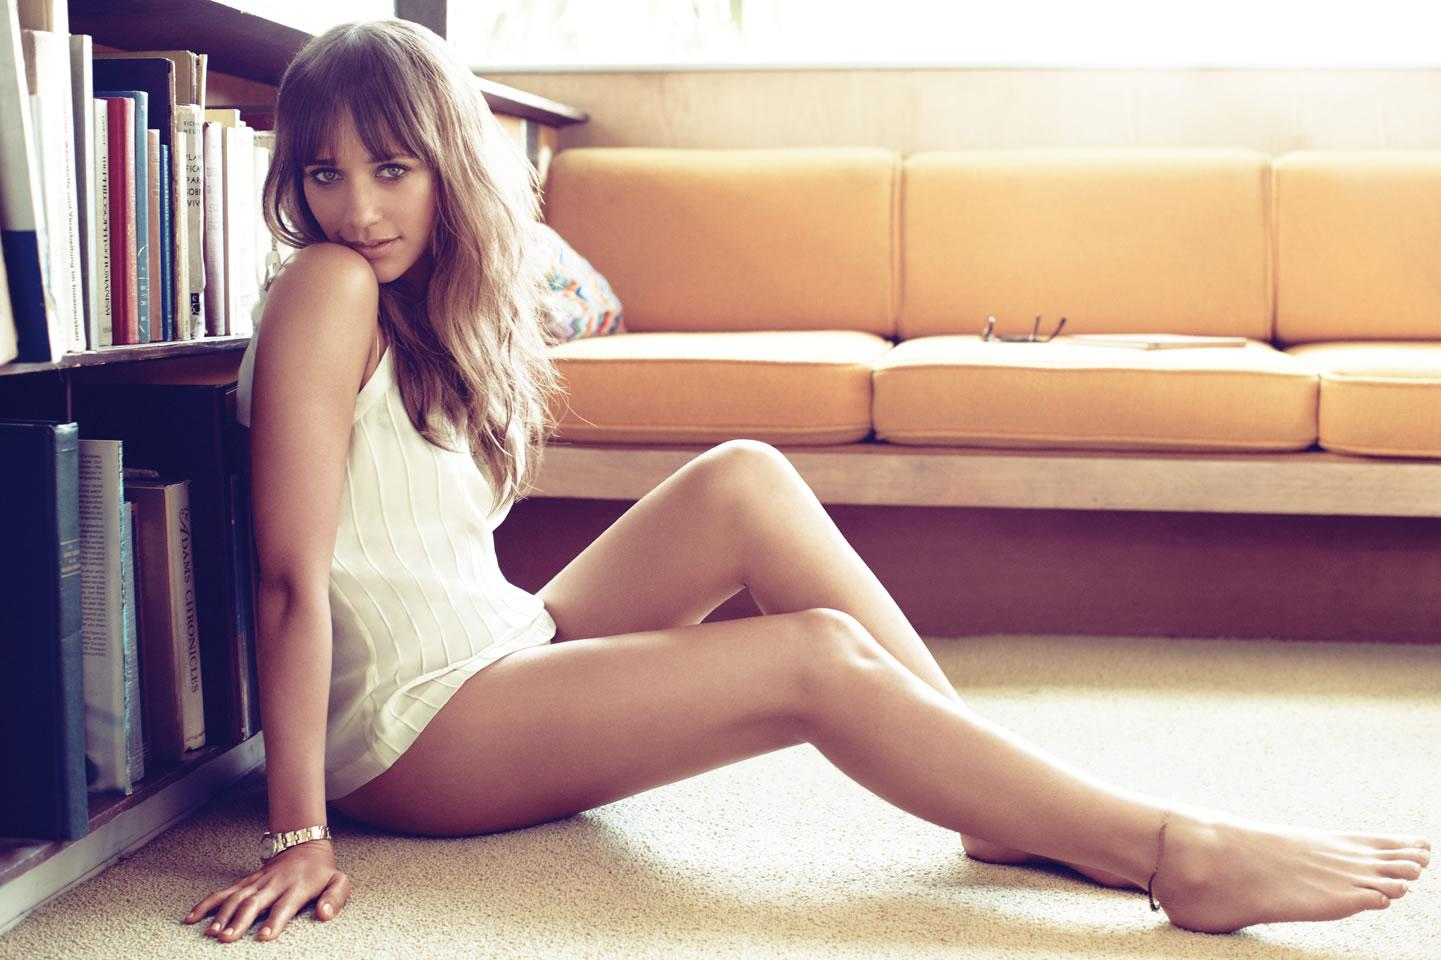 Rashida Jones - Figlia di Quincy Jones e Peggy Lipton